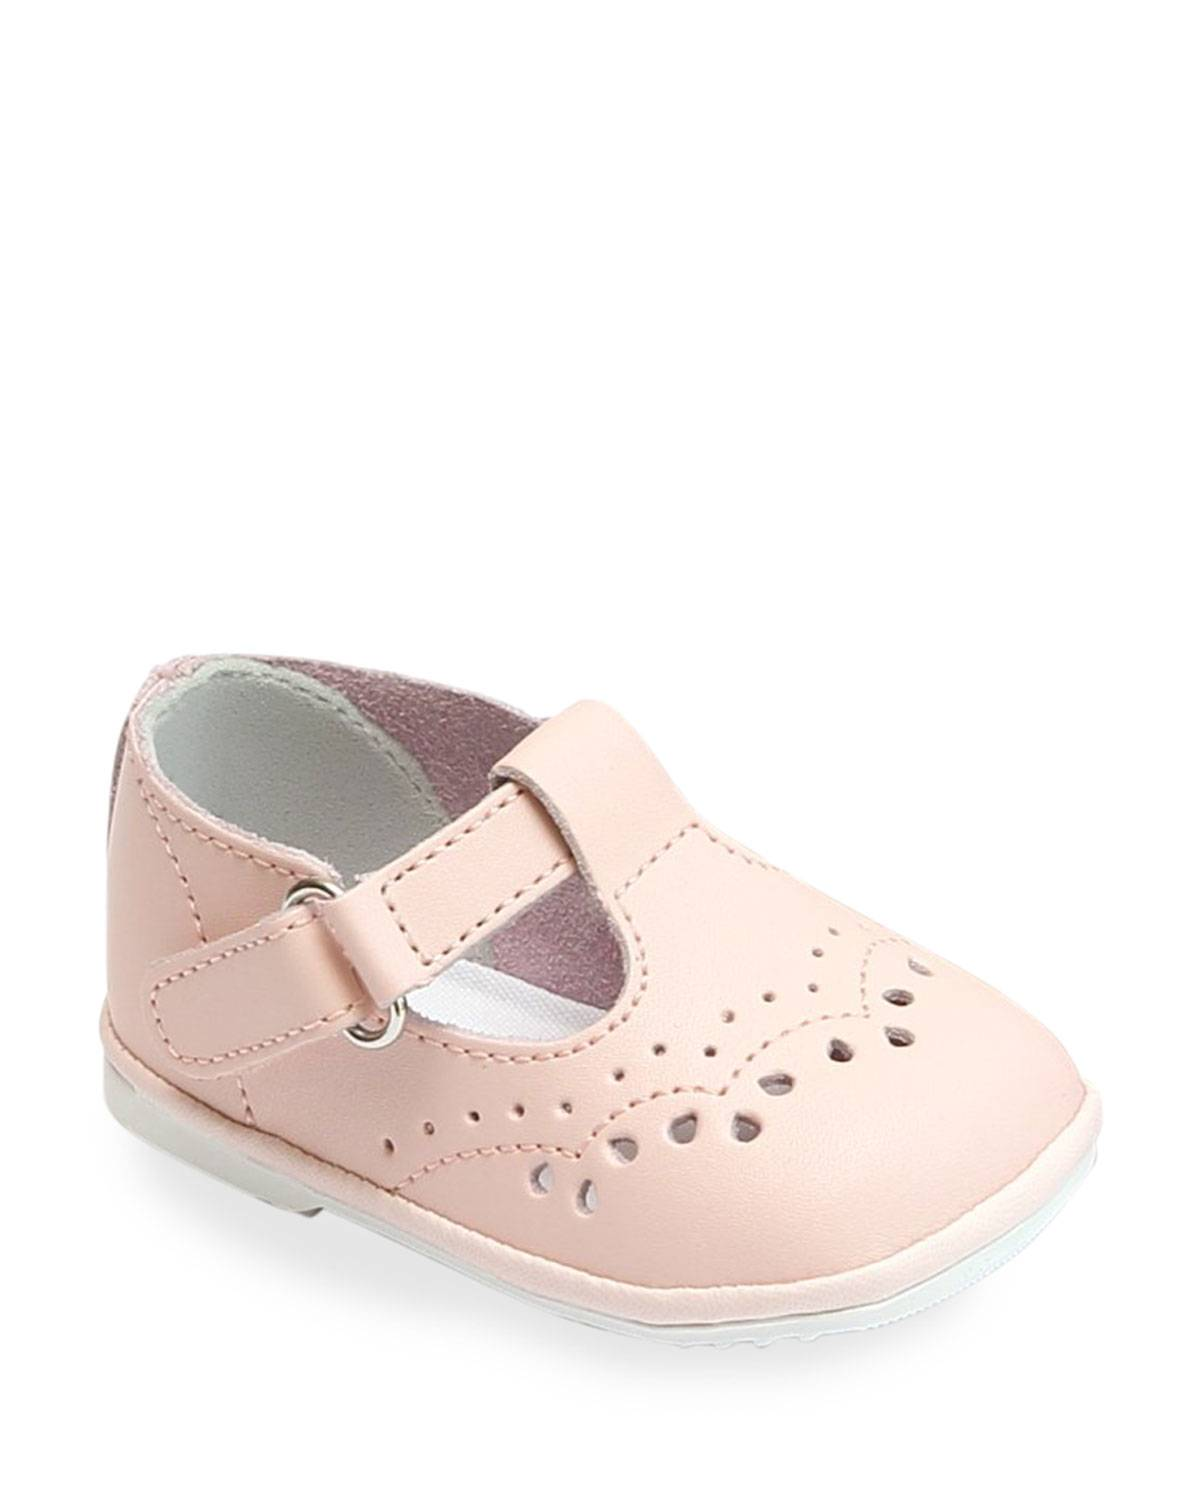 L'Amour Shoes Birdie Leather T-Strap Brogue Mary Jane, Baby  - female - PINK - Size: 7 Baby